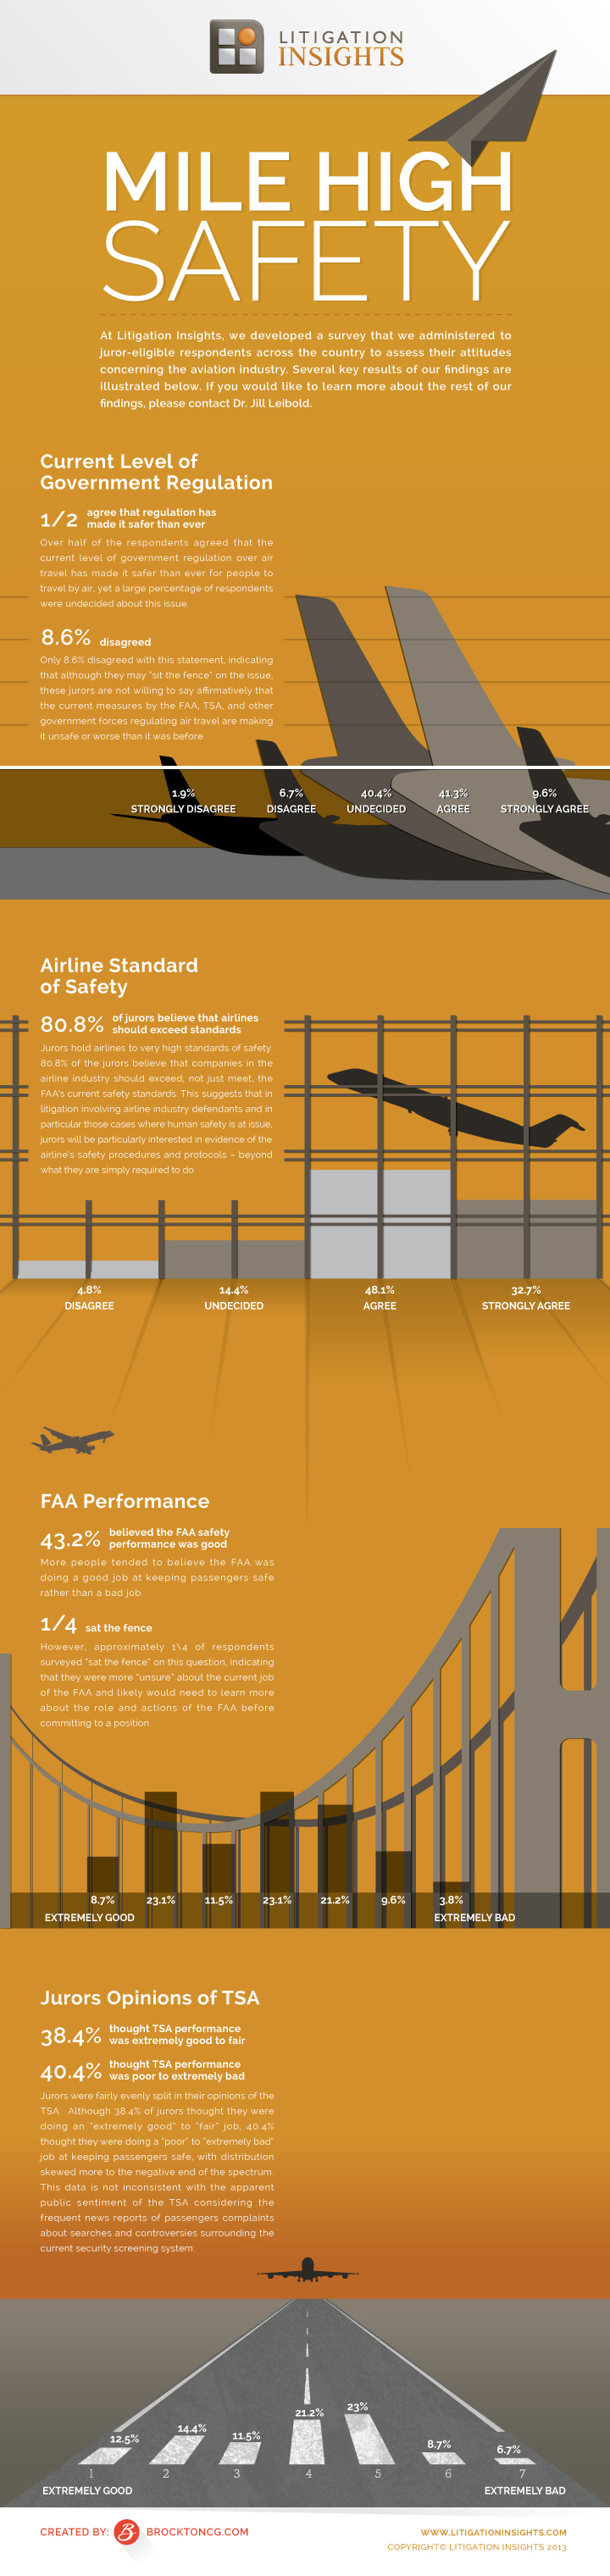 Infographic Image Representing Jurors Attitudes Toward The Aviation Industry - Litigation Insights